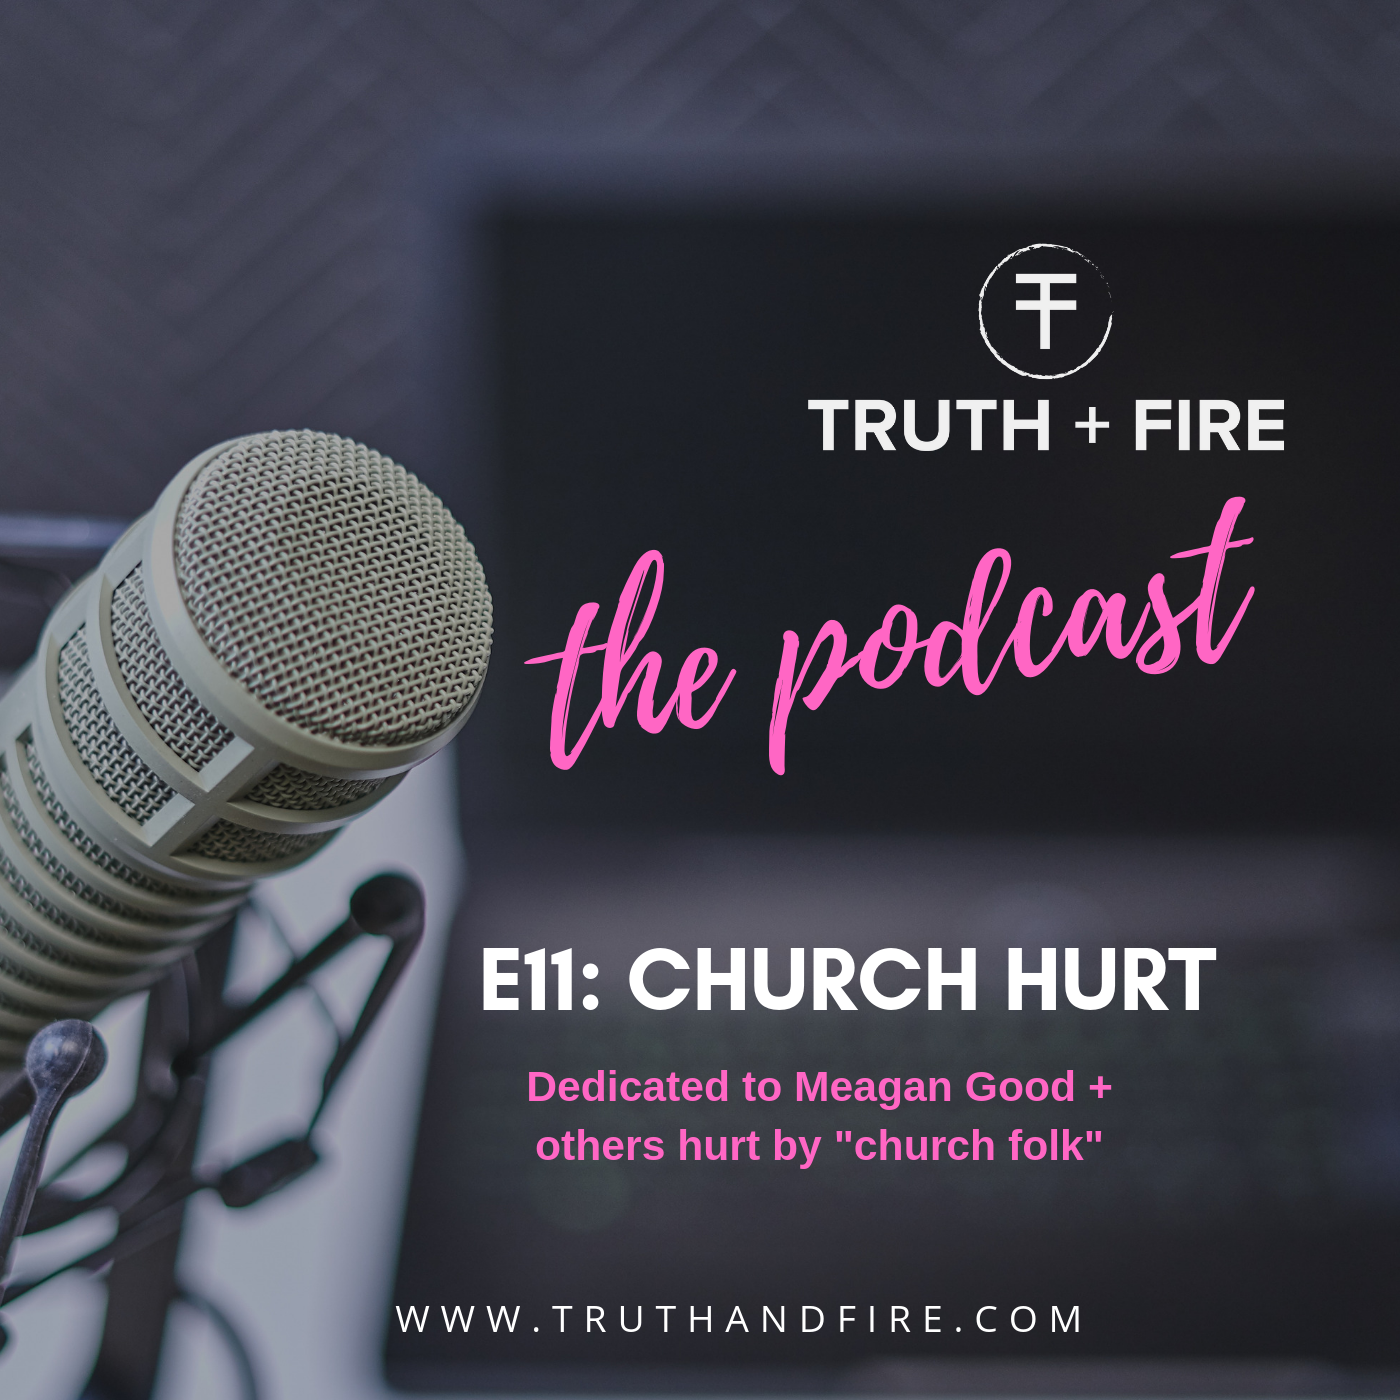 Tune in to episode 11 of Truth + Fire: The Podcast for further commentary on this topic. Select the image to listen now.